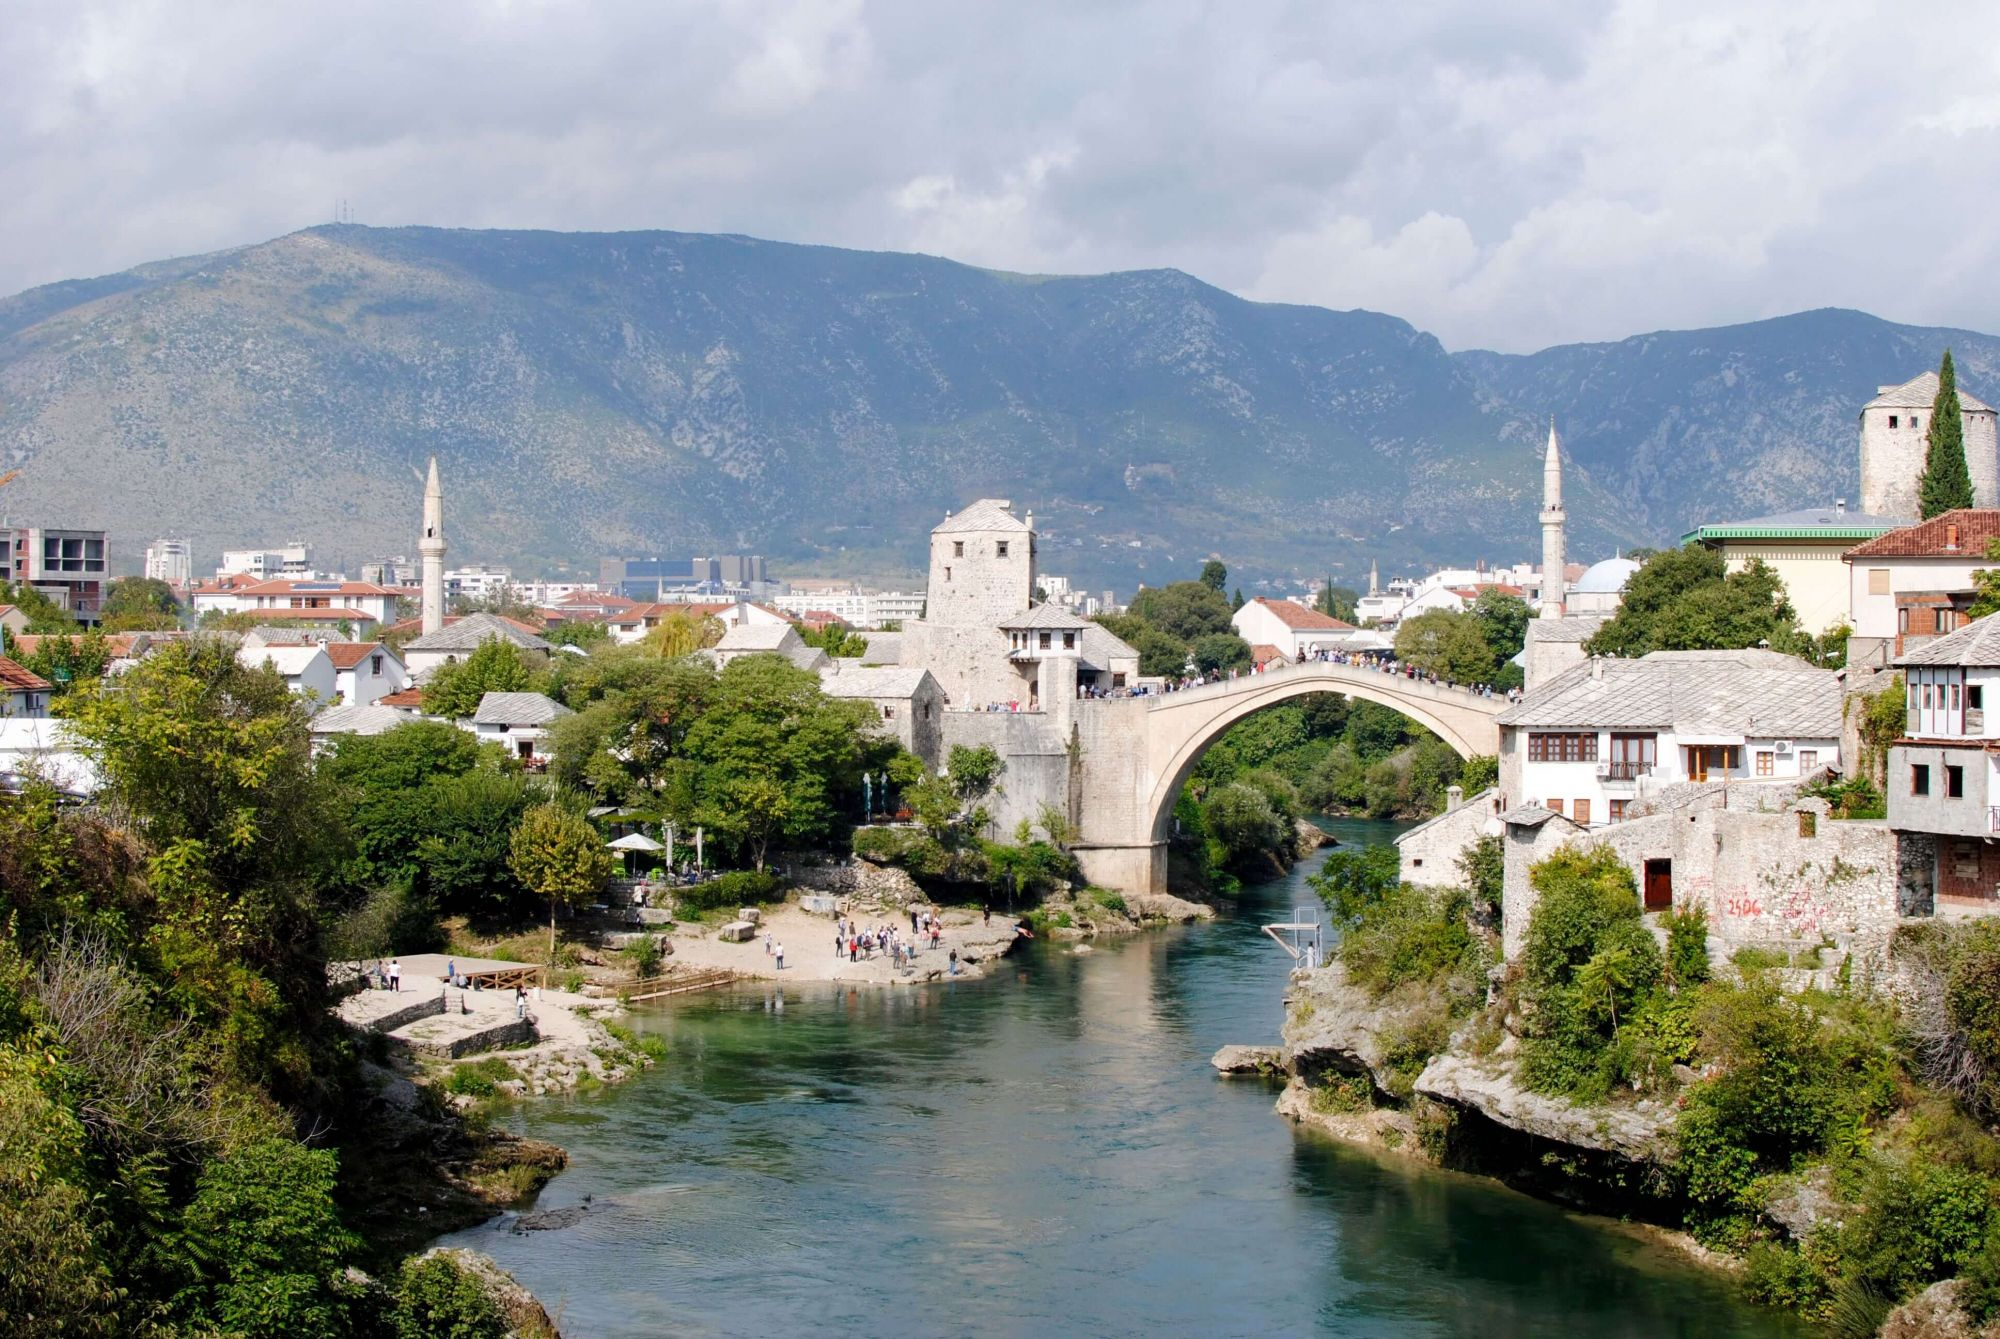 Top Things to Do in Mostar